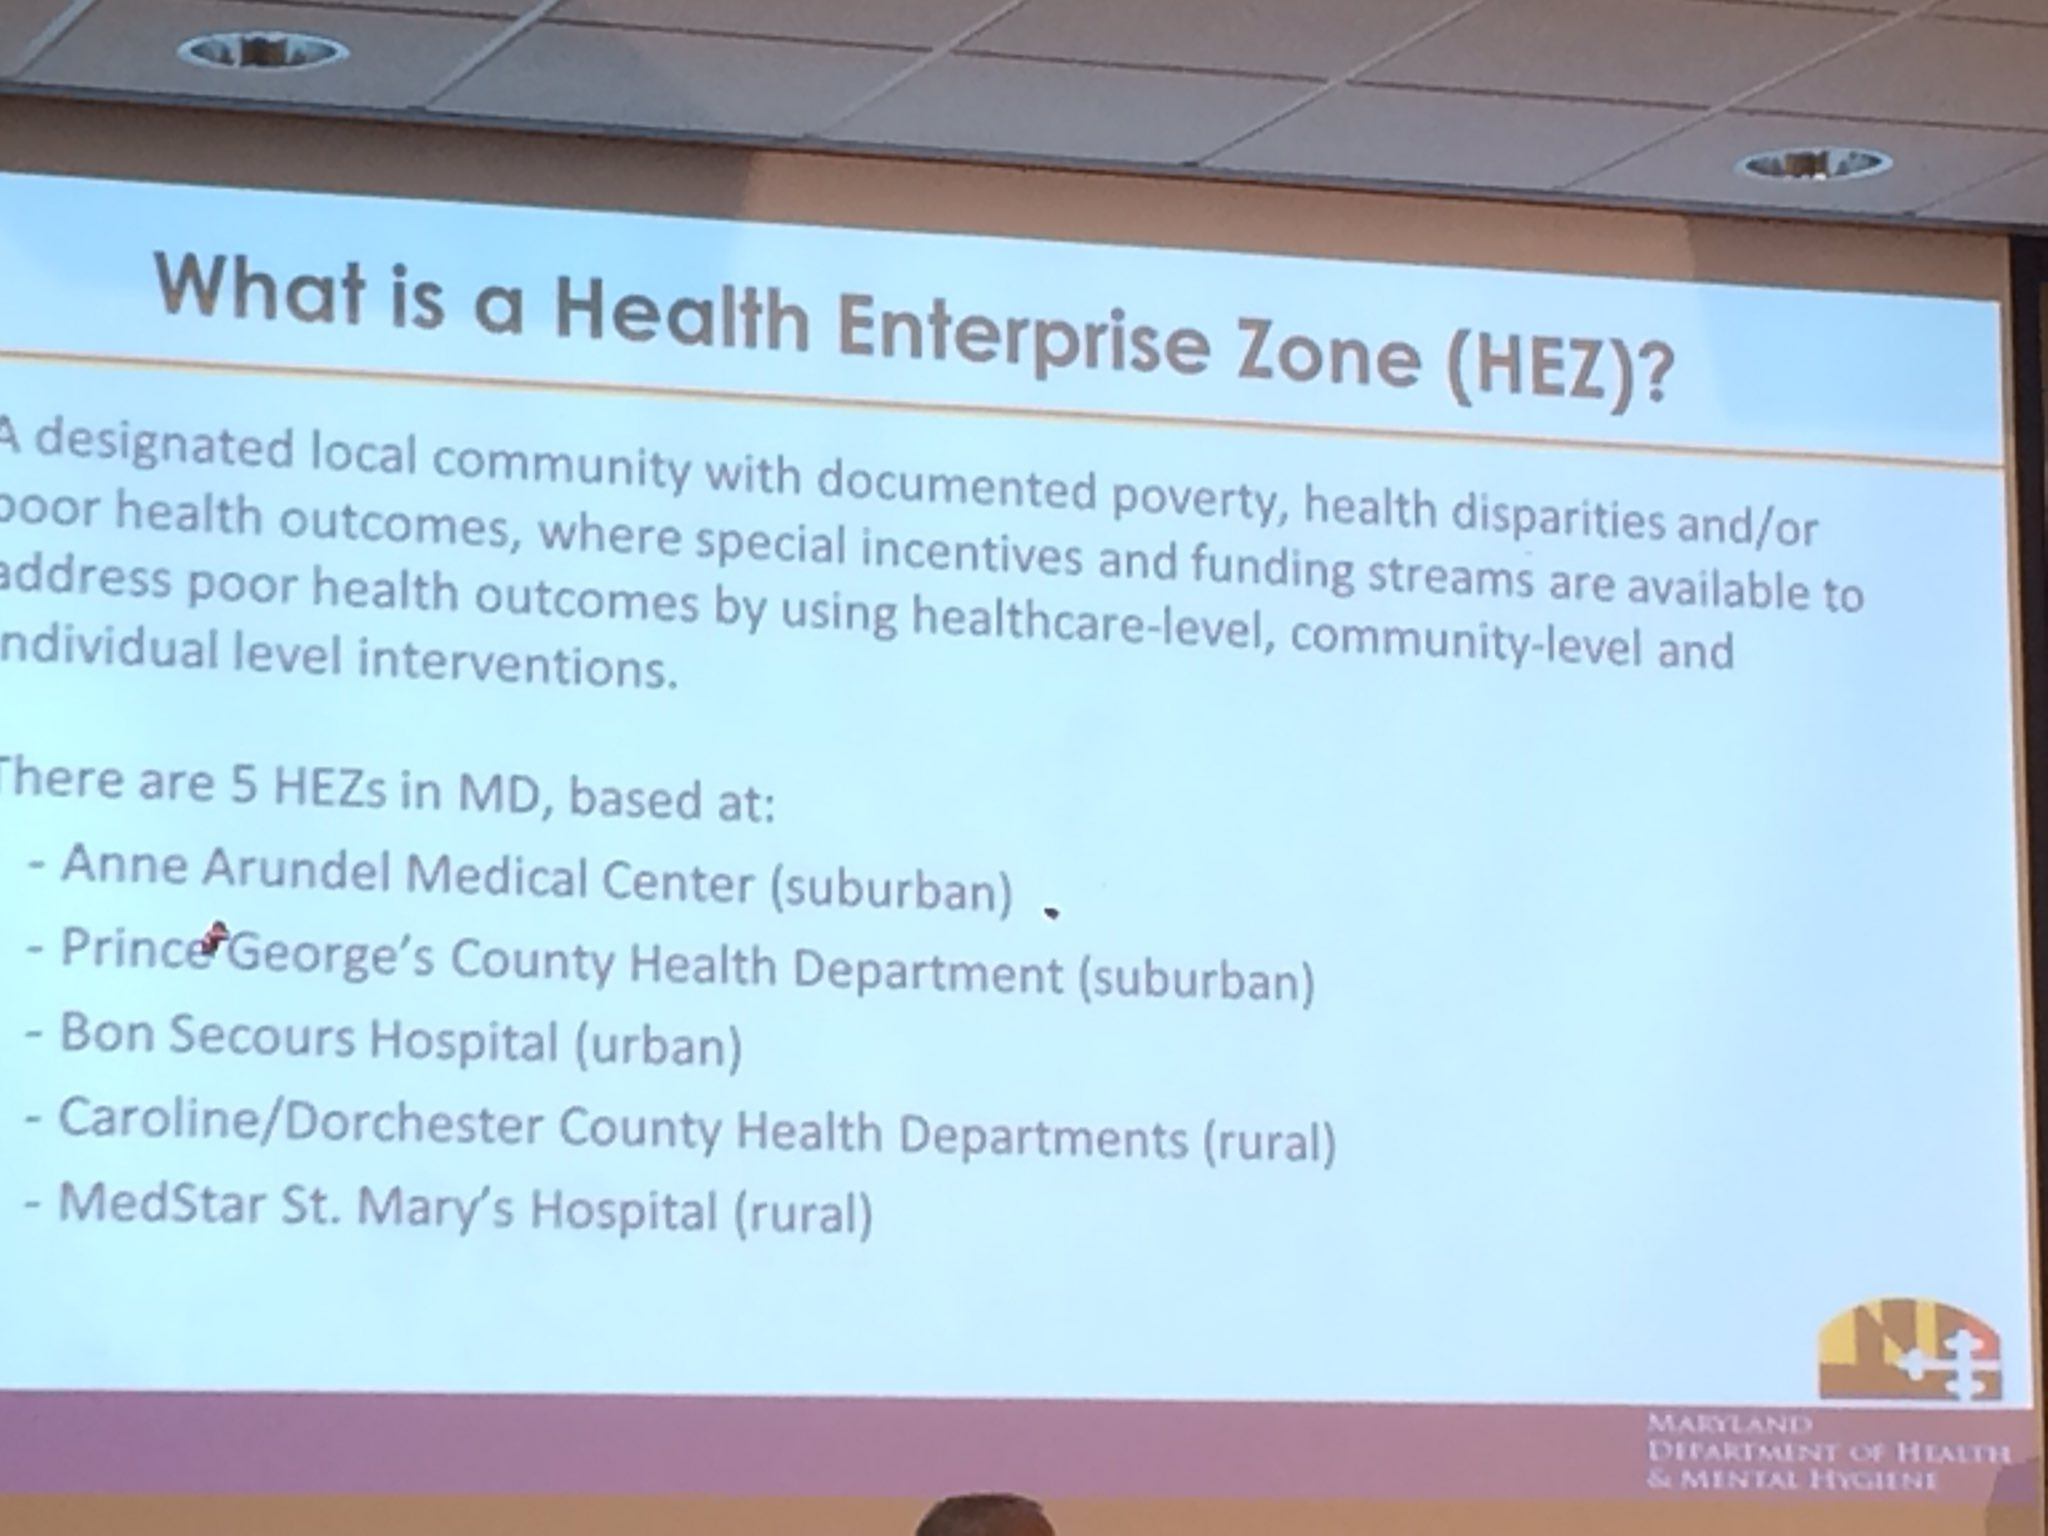 Are you familiar with MD's HEZs? #NPHW #publichealthMD https://t.co/wnHQZGCmQZ